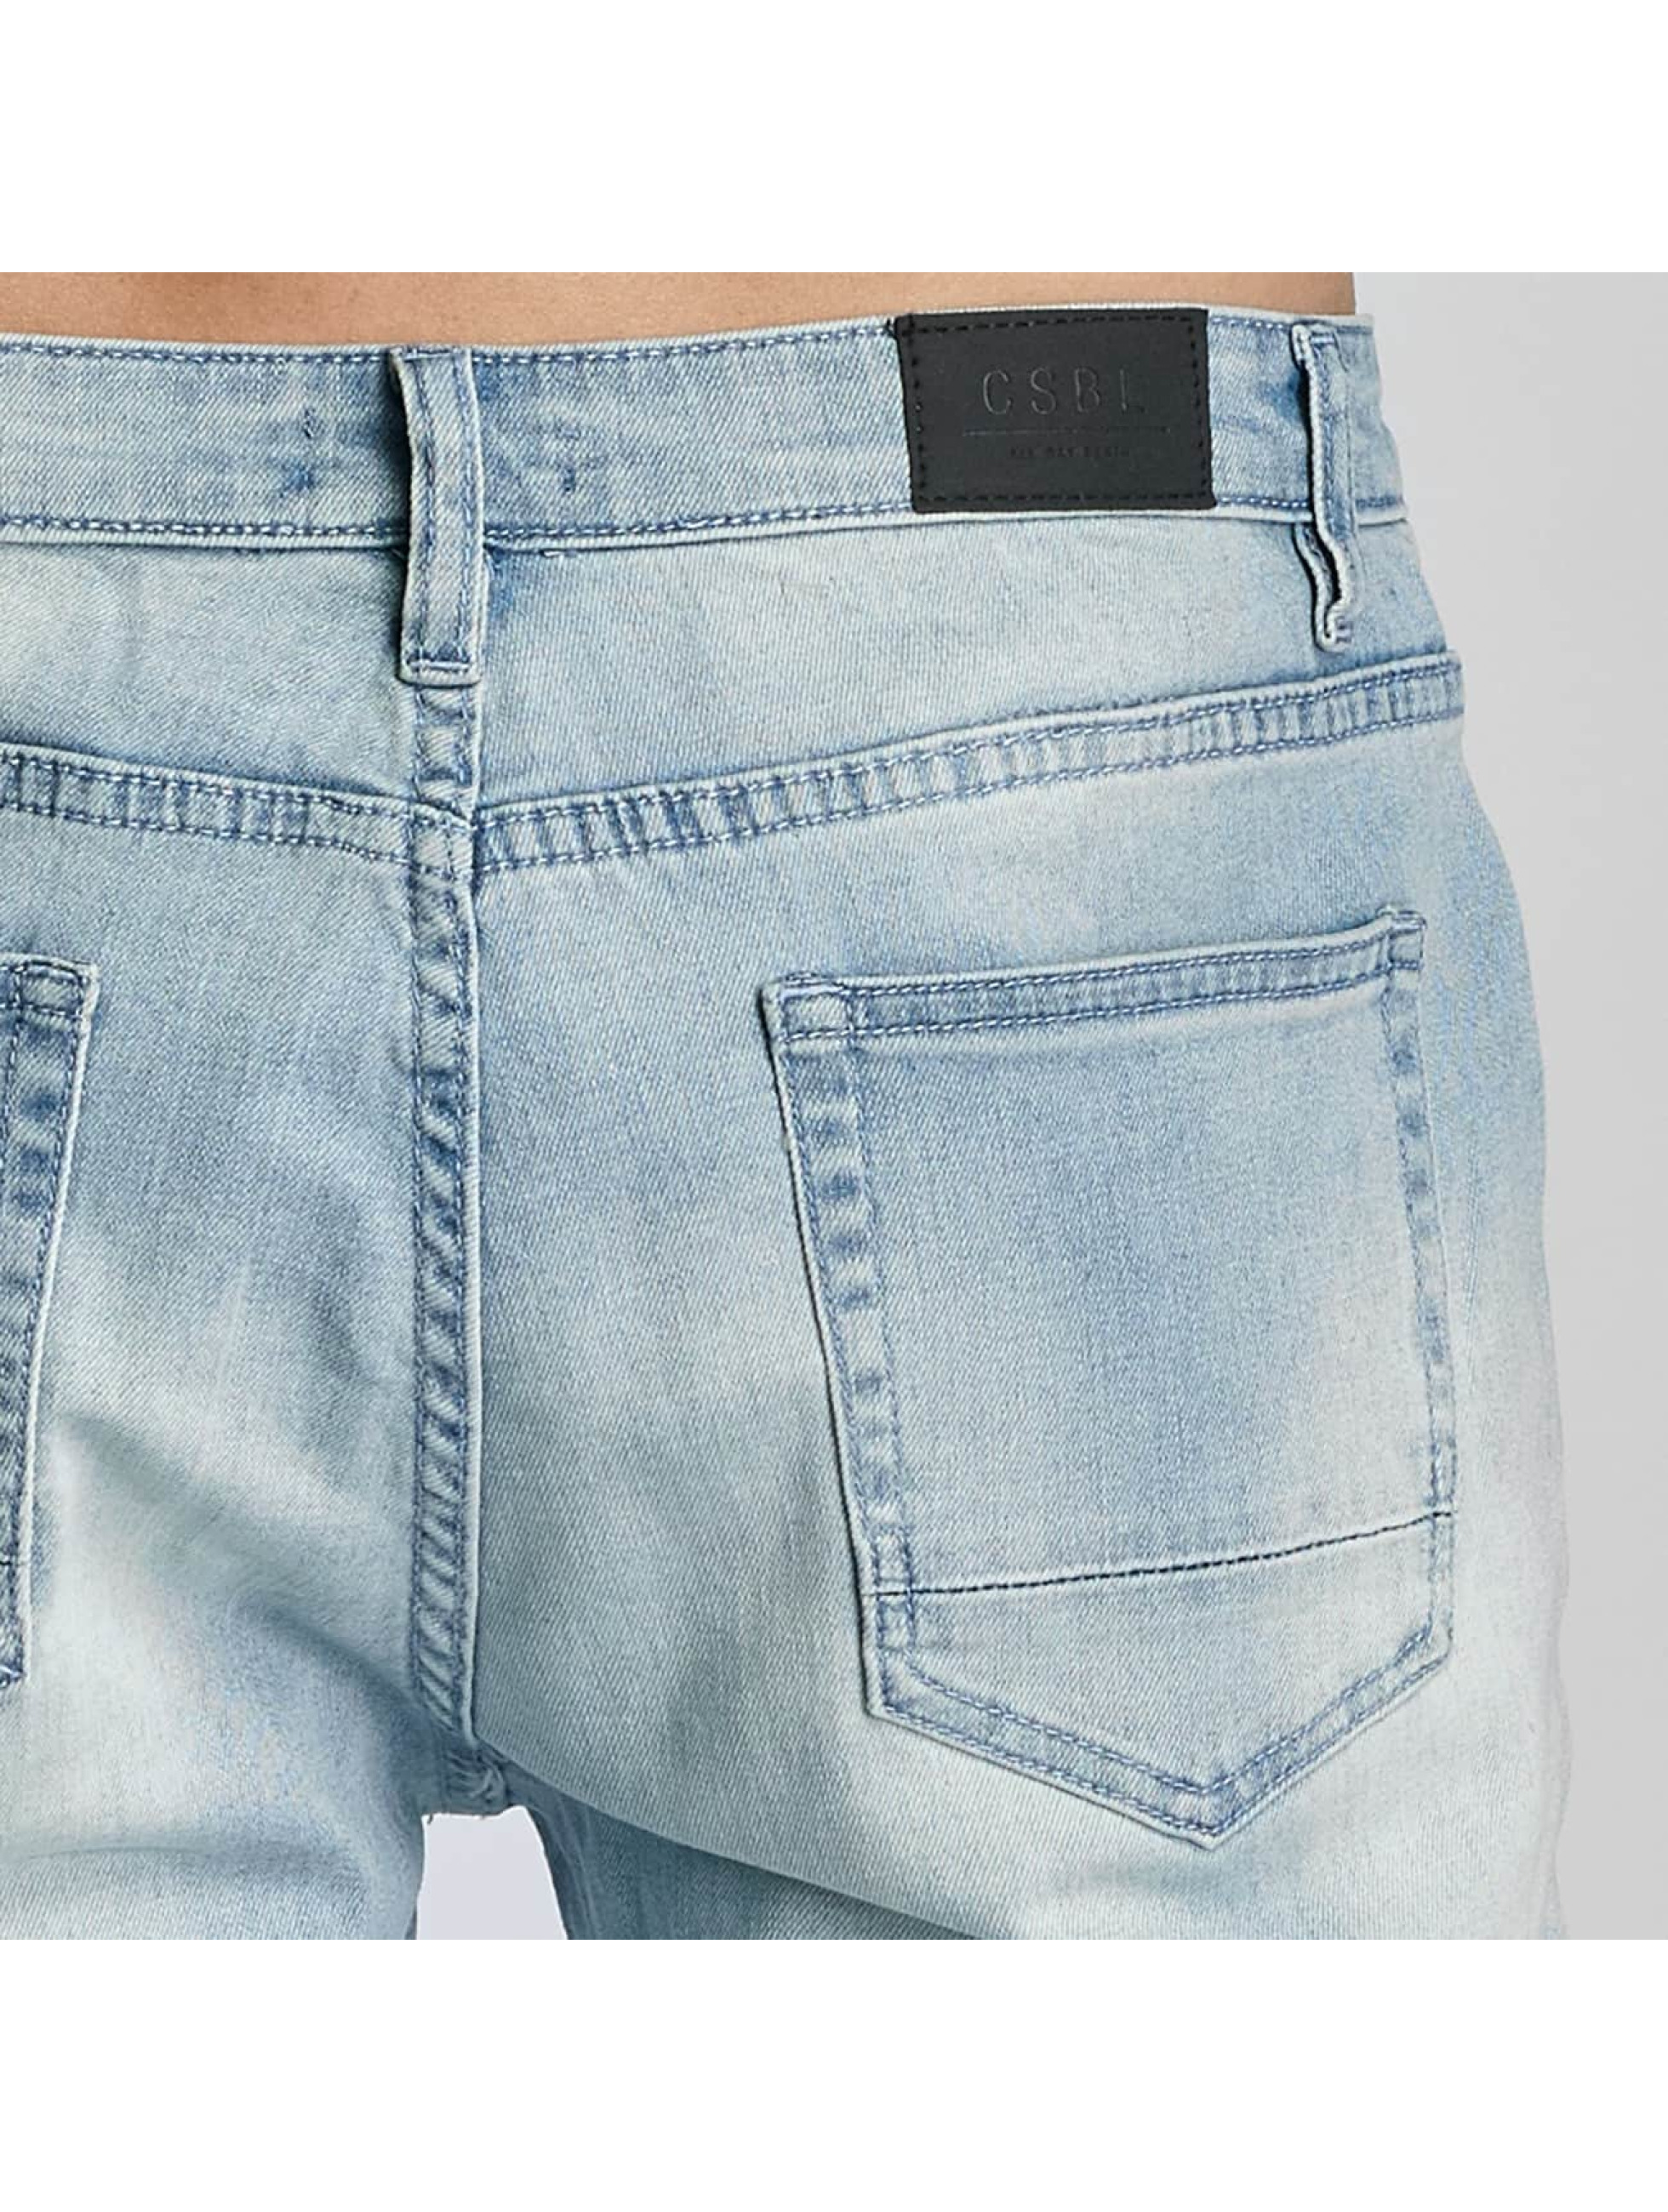 Cayler & Sons Straight Fit Jeans Pad blau